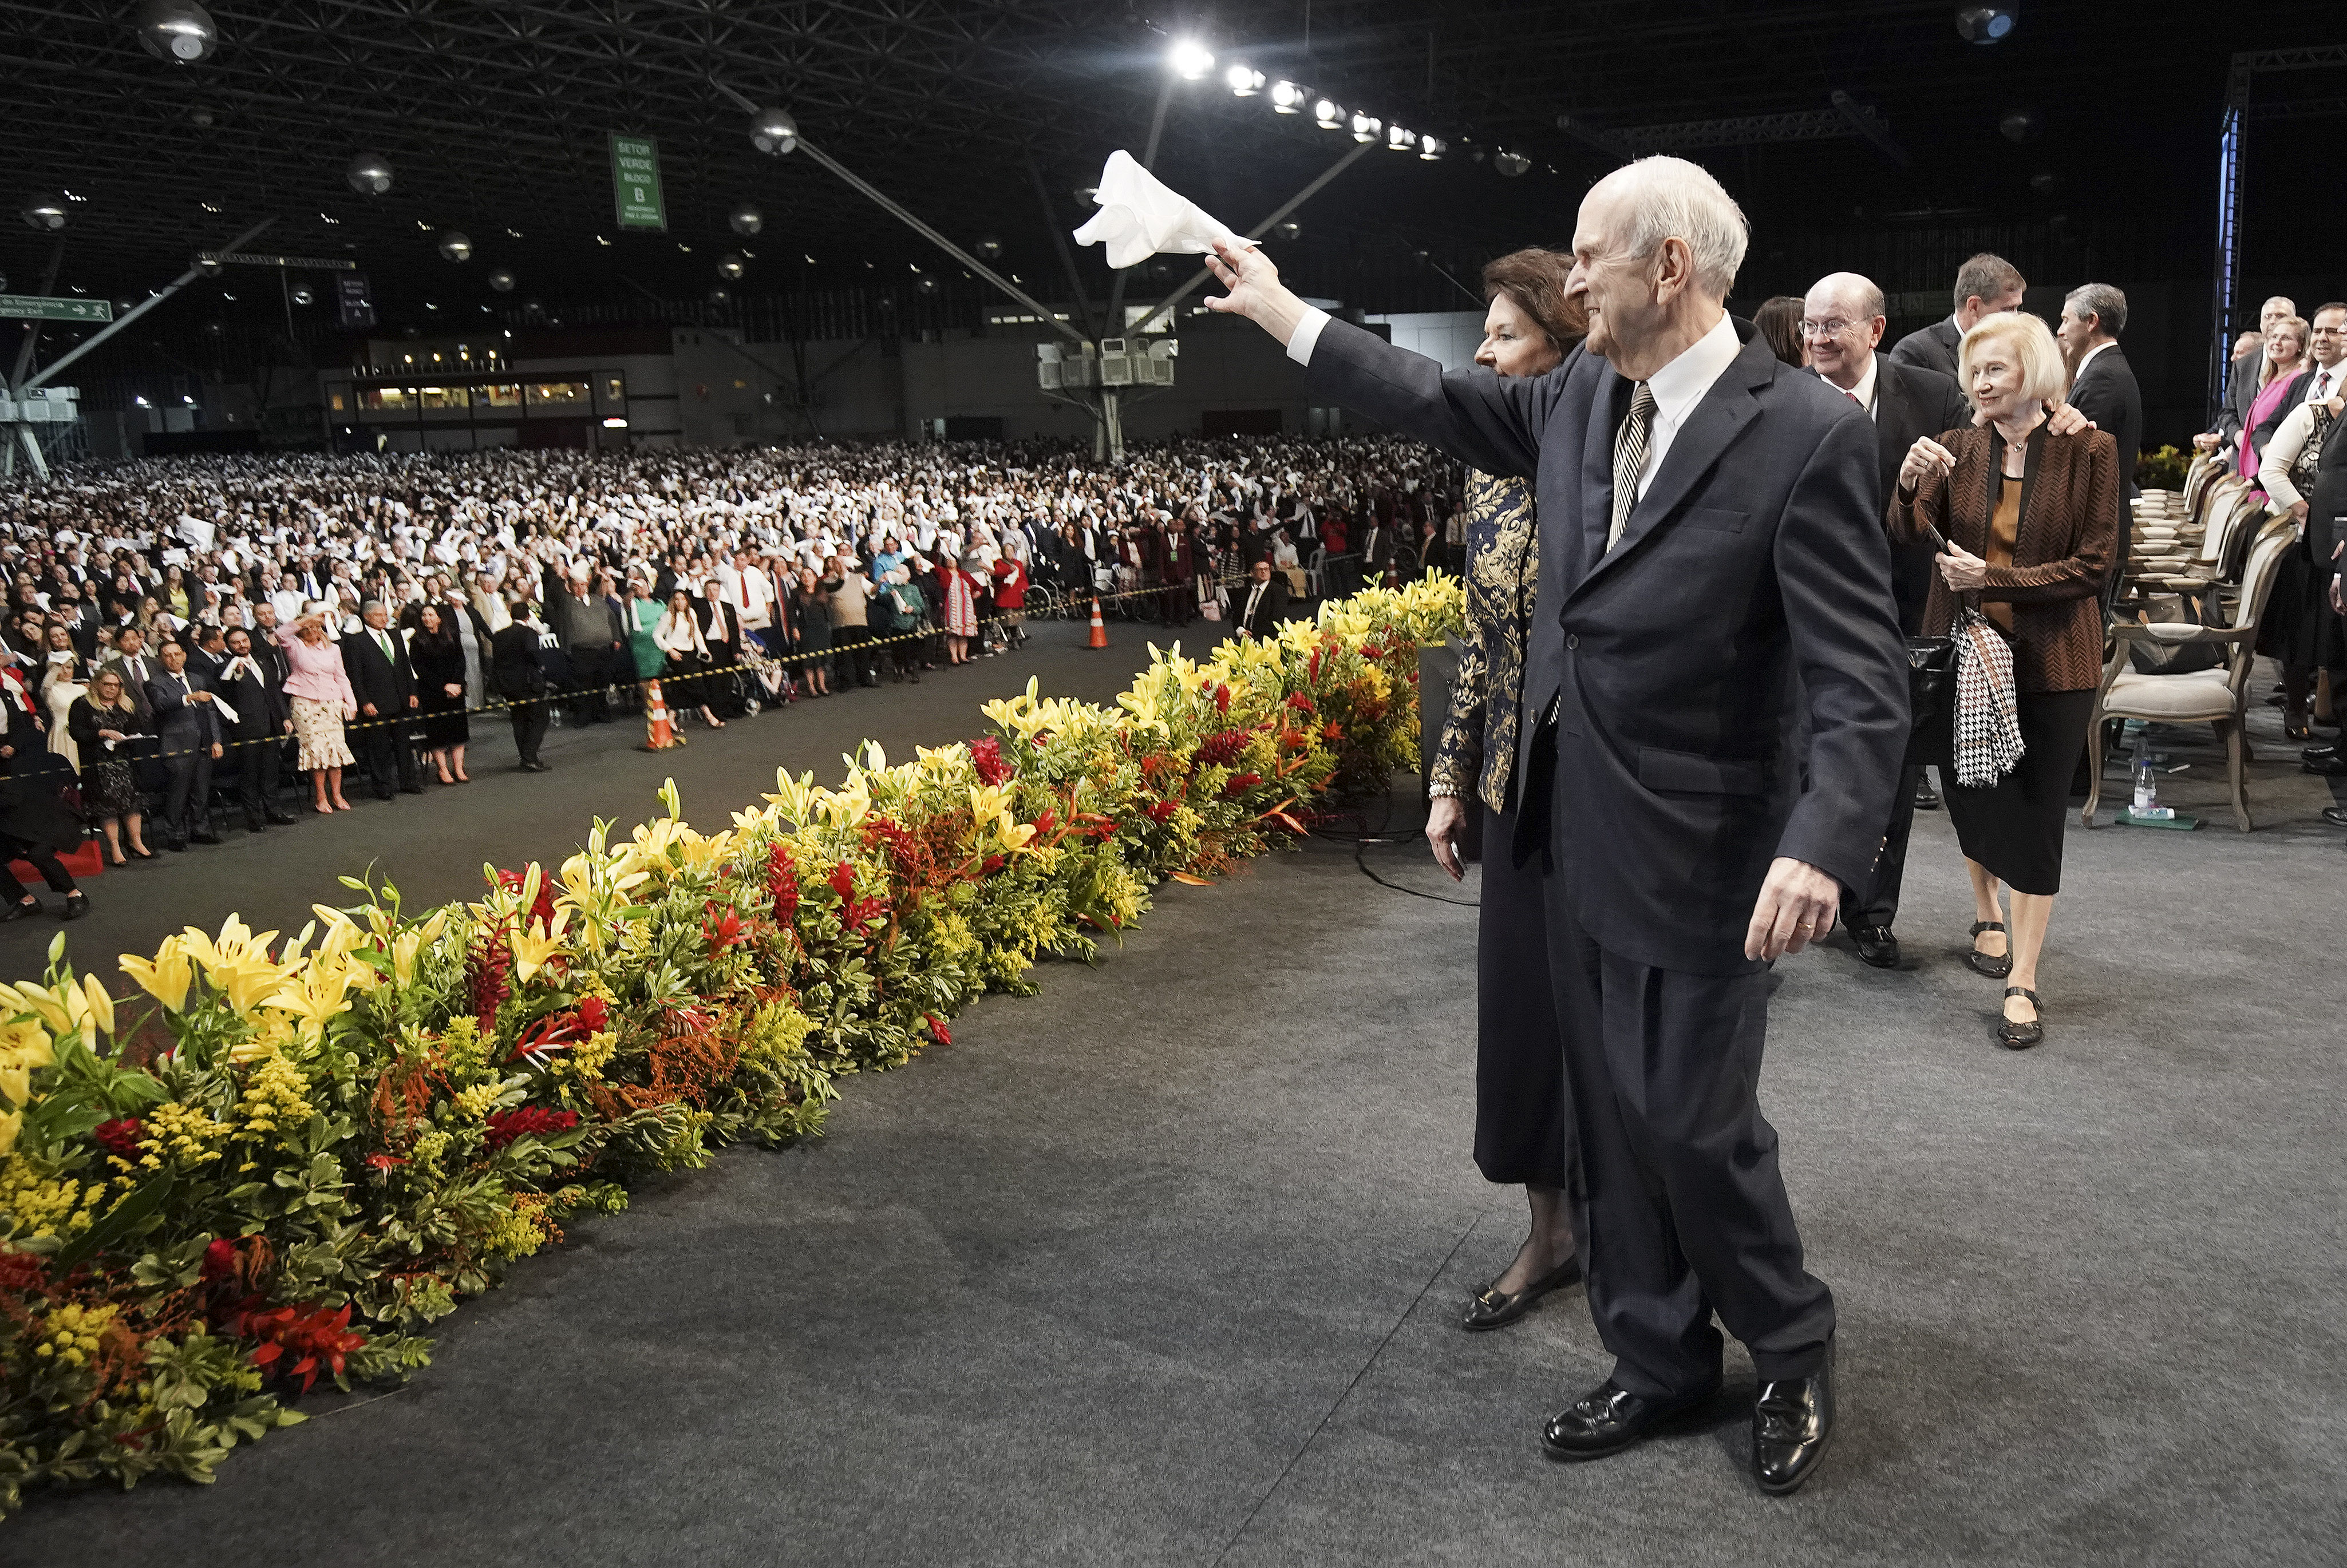 President Russell M. Nelson and his wife, Sister Wendy Nelson, and Elder Quentin L. Cook and his wife, Sister Mary Cook, wave to attendees after a devotional in Sao Paulo, Brazil, on Sunday, Sept. 1, 2019.